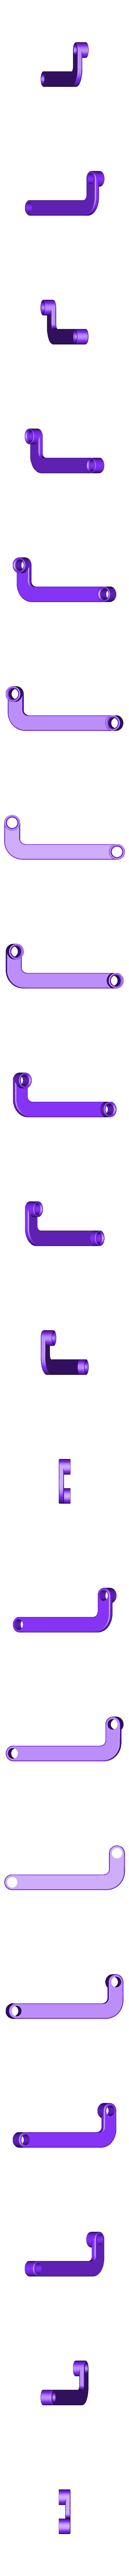 Right_..stl Download free STL file Lifting Gear For Automatic Nozzle Cleaner • 3D print template, Ruvimkub